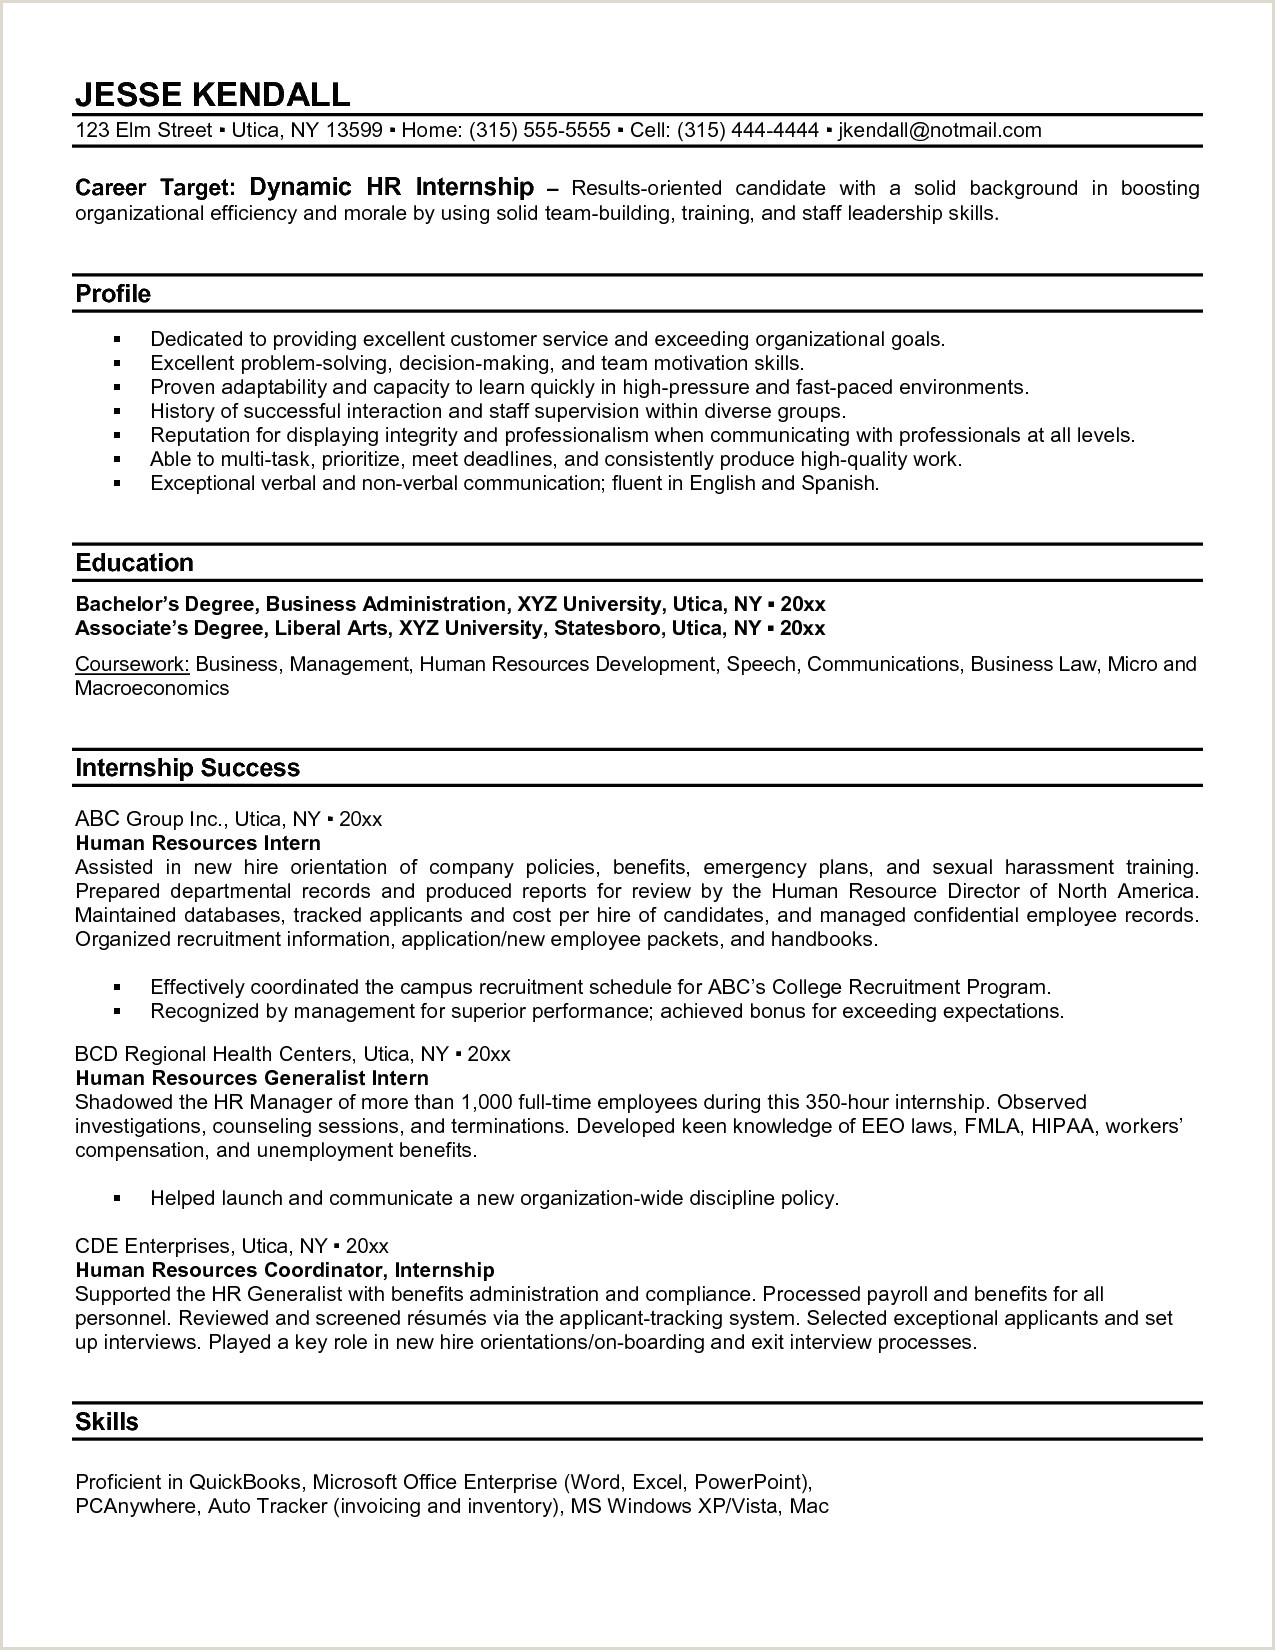 Human Resource Manager Resume Examples Sample Human Resources Manager Resume Elegant Human Resource